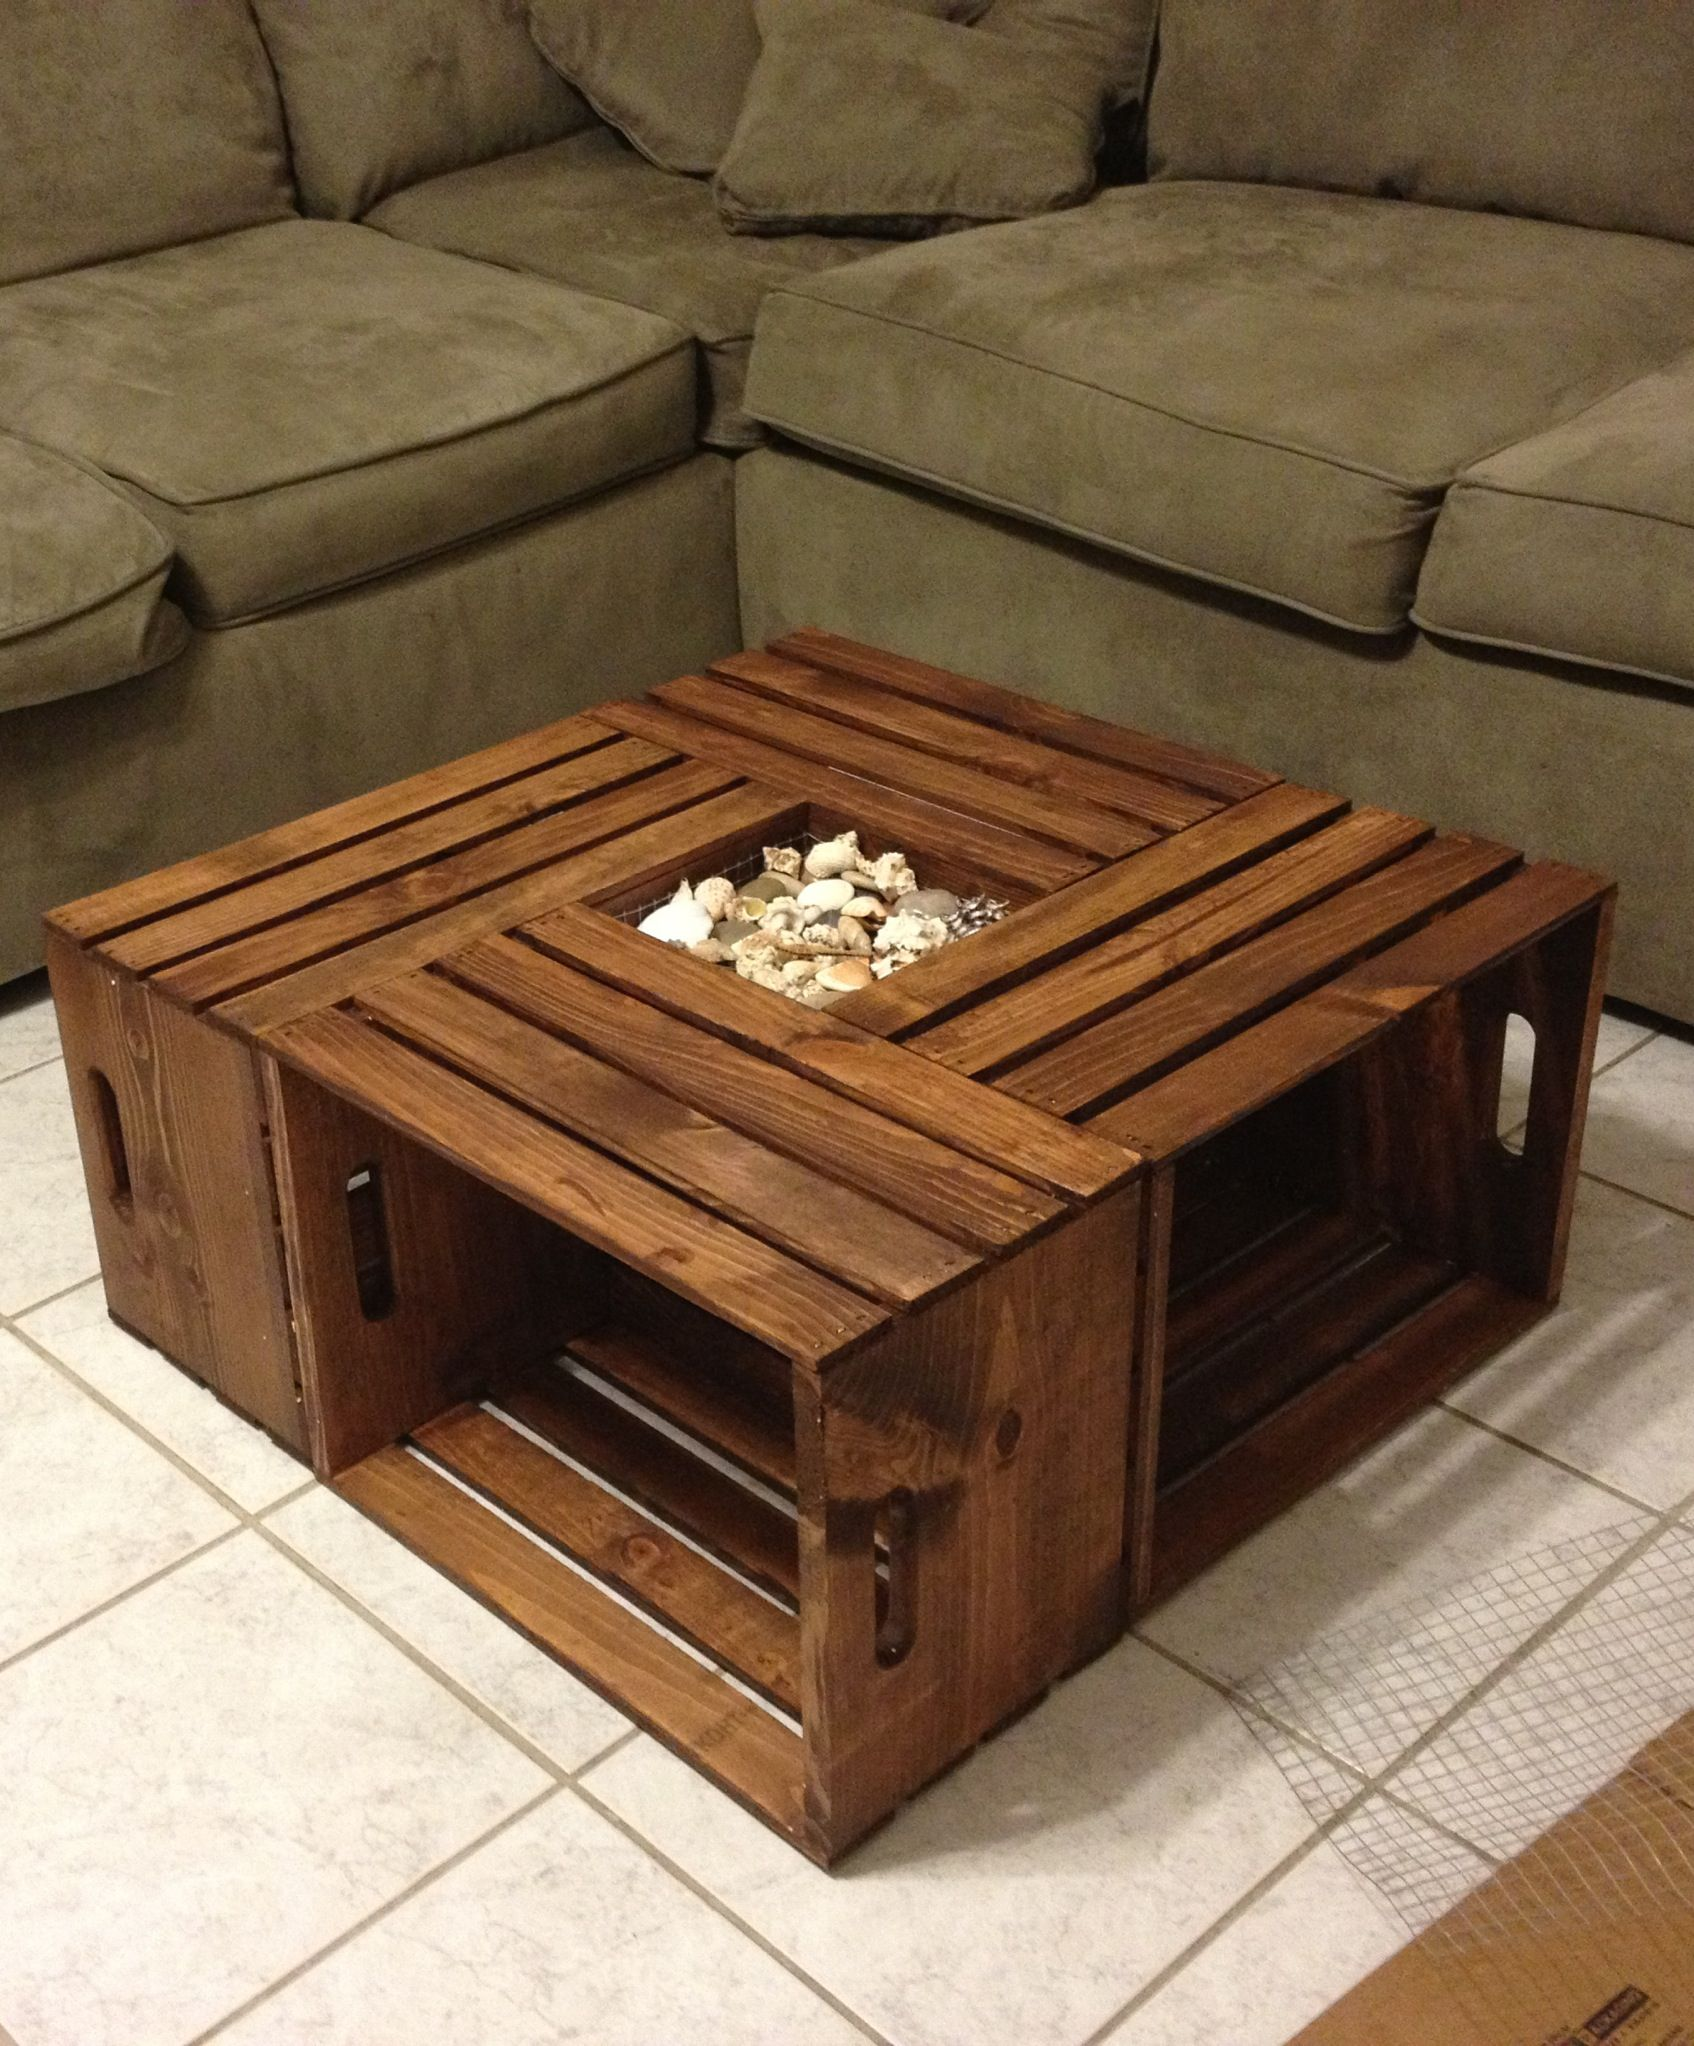 15 unique reclaimed pallet table ideas diy coffee table Unique coffee table ideas